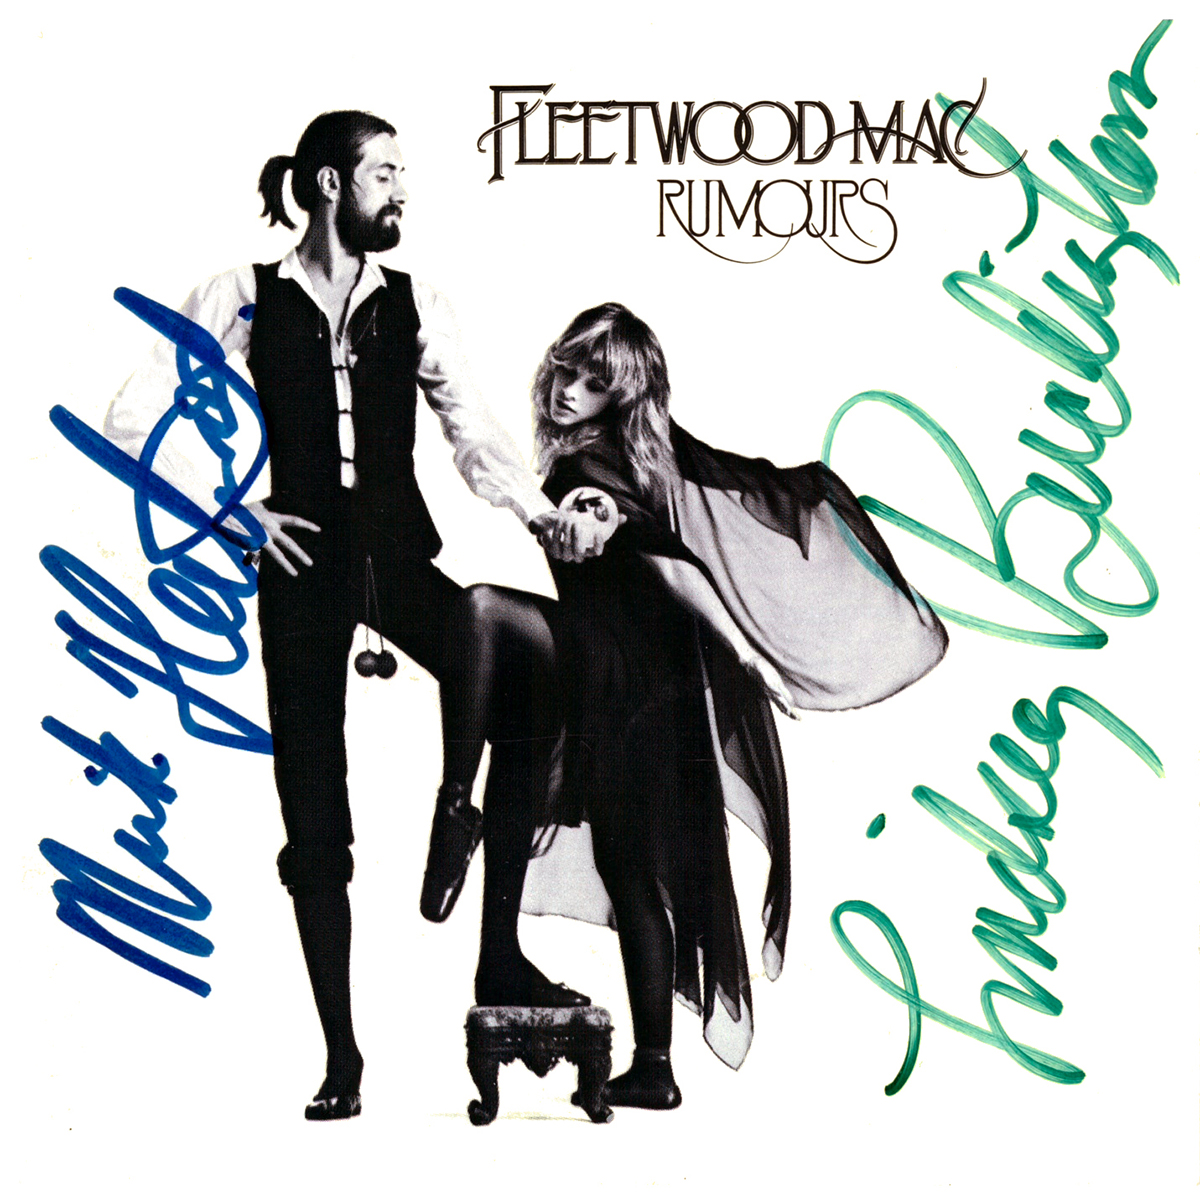 CD Cover - Fleetwood Mac - Rumors #3